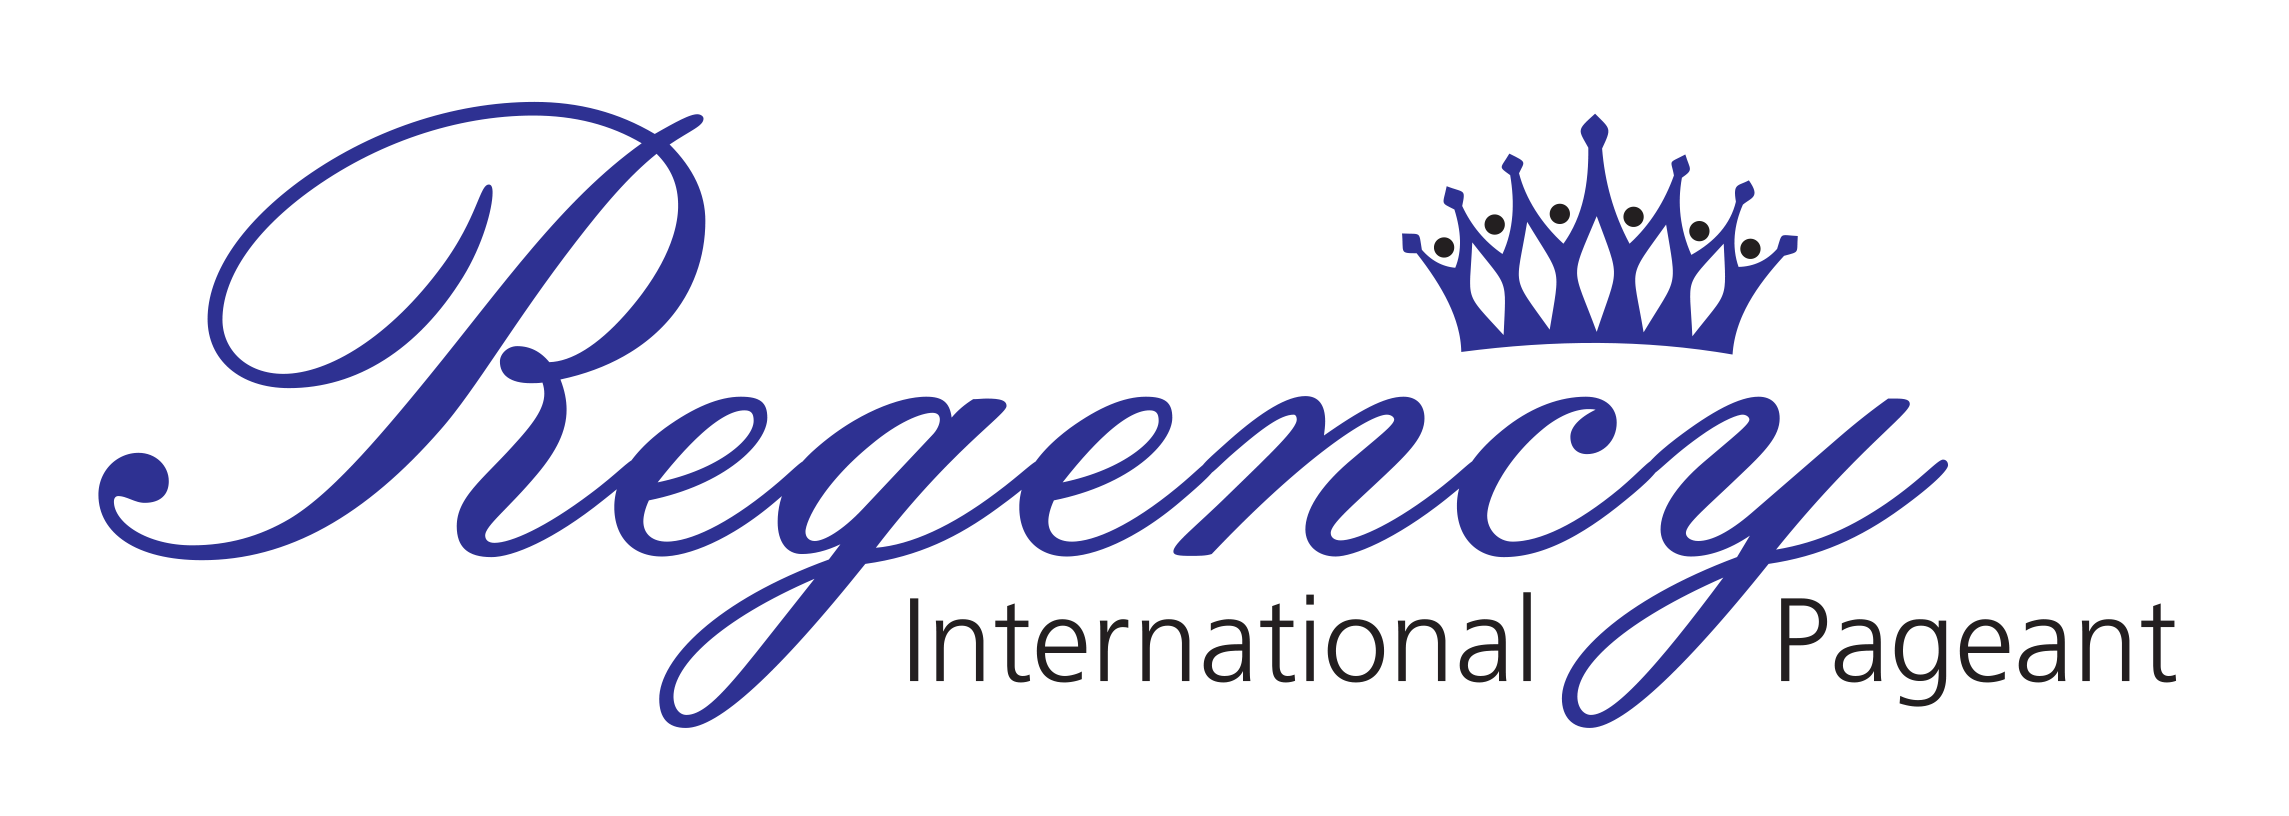 Regency International Pageant